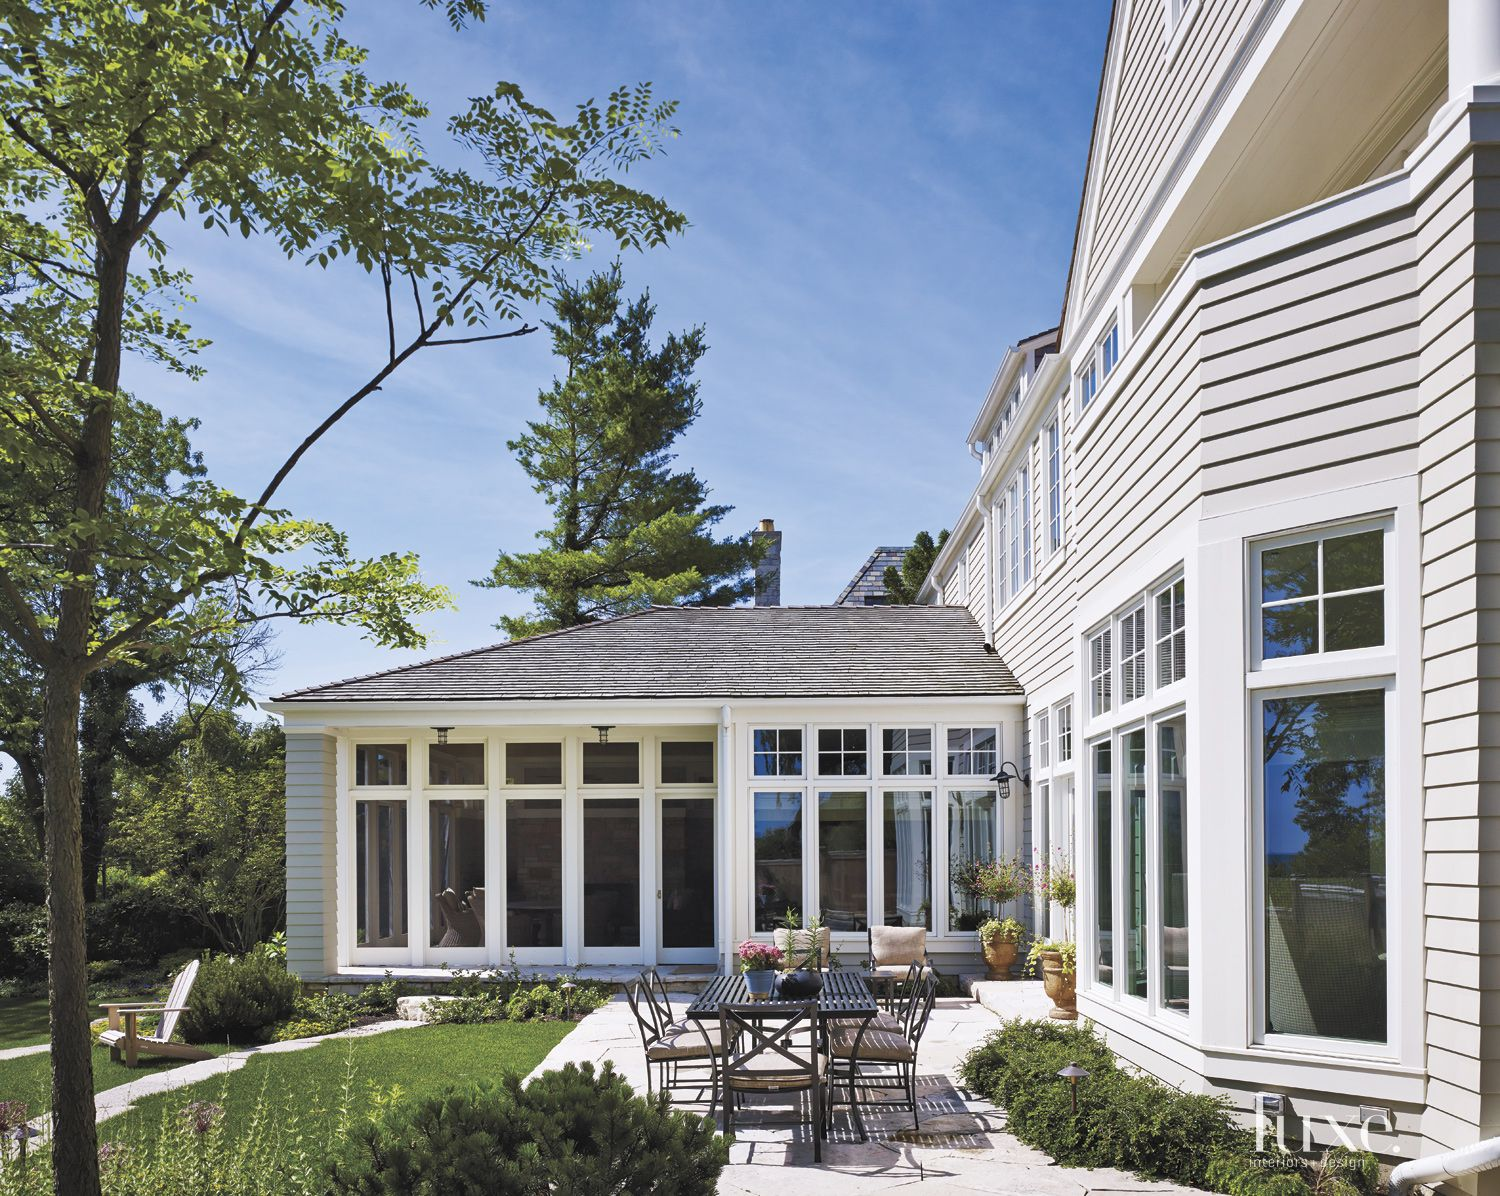 Transitional Exterior with Outdoor Dining Set